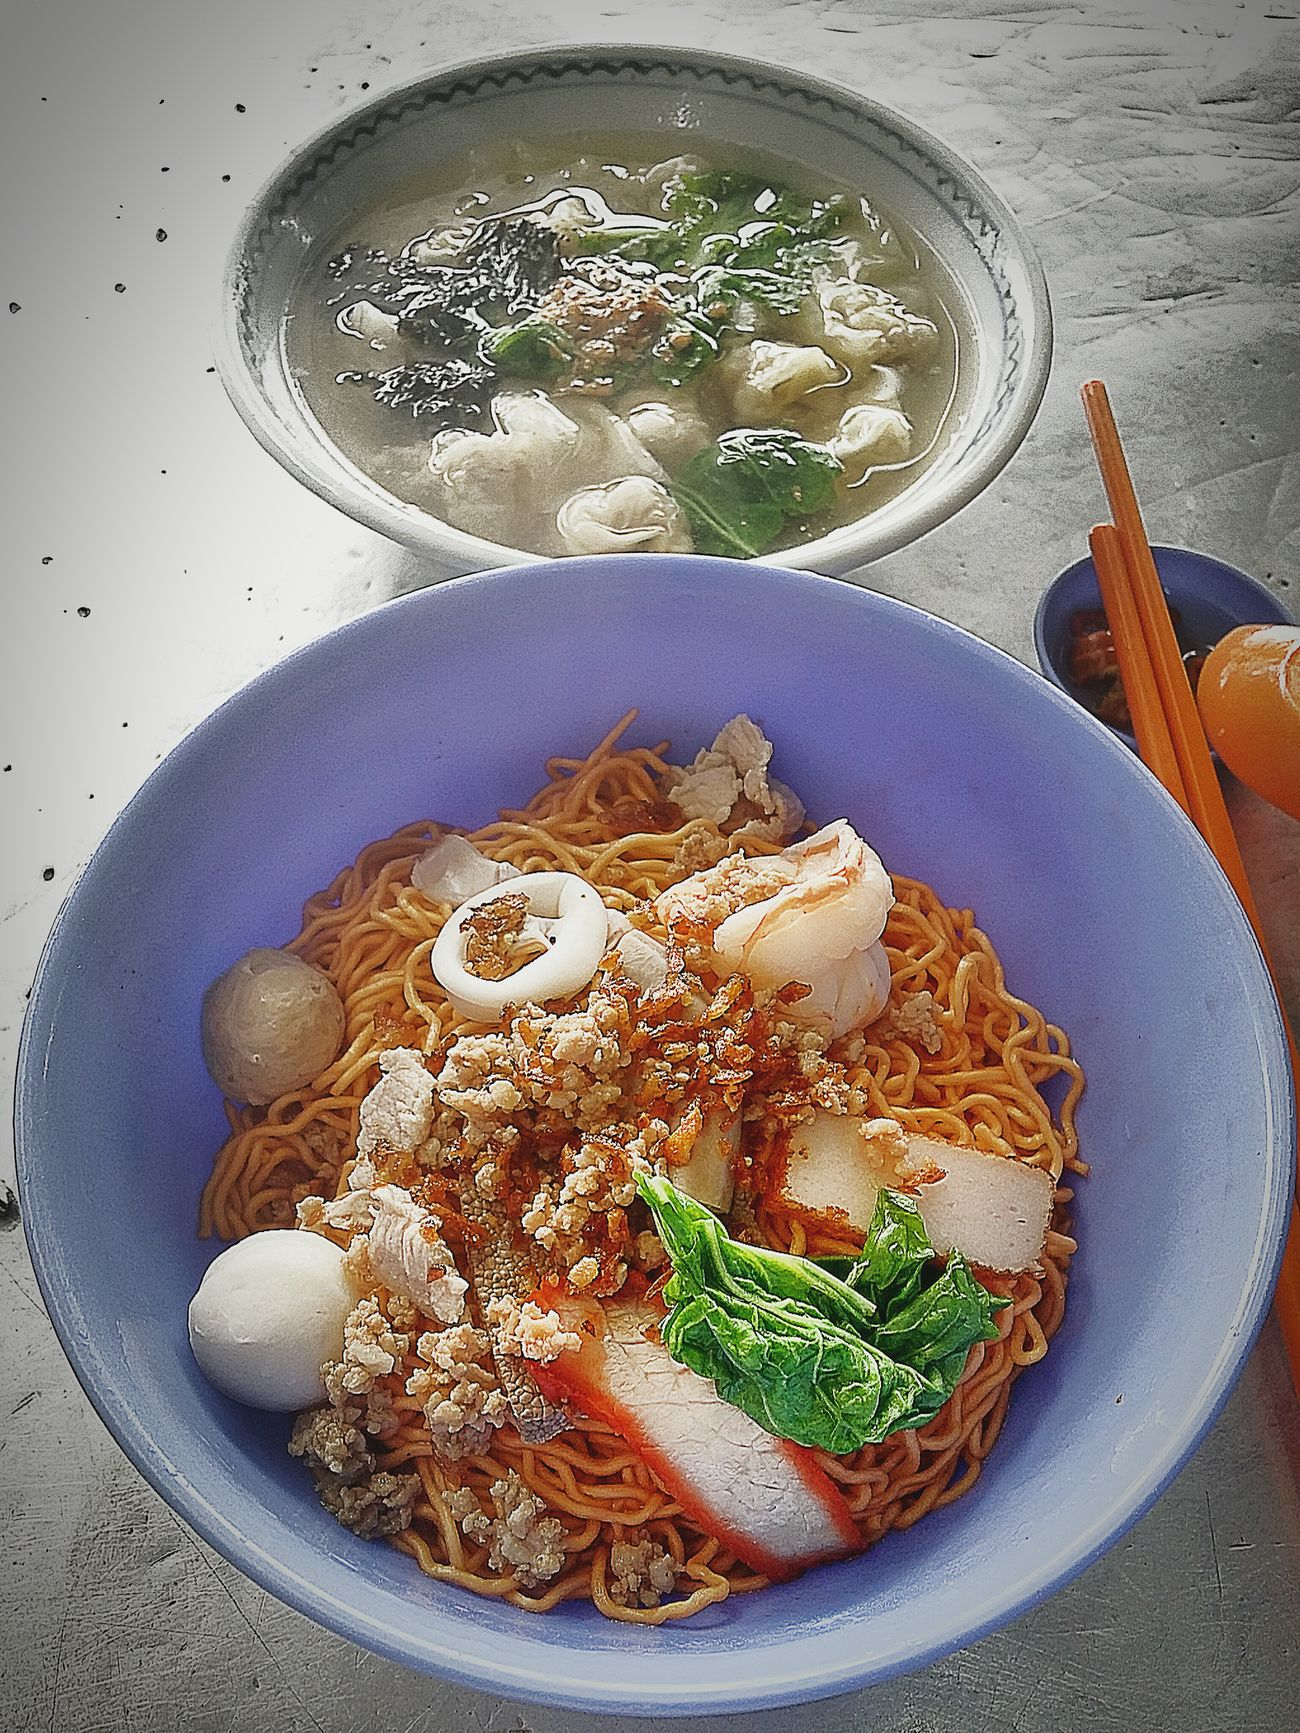 Asianfood Kolomee Wantonmee Sarawak Food Delicious ♡ Breakfast Enjoying The Food Soup Tuesdaymorning Asiancuisine Yummy♡ Happy breakfast people!😁